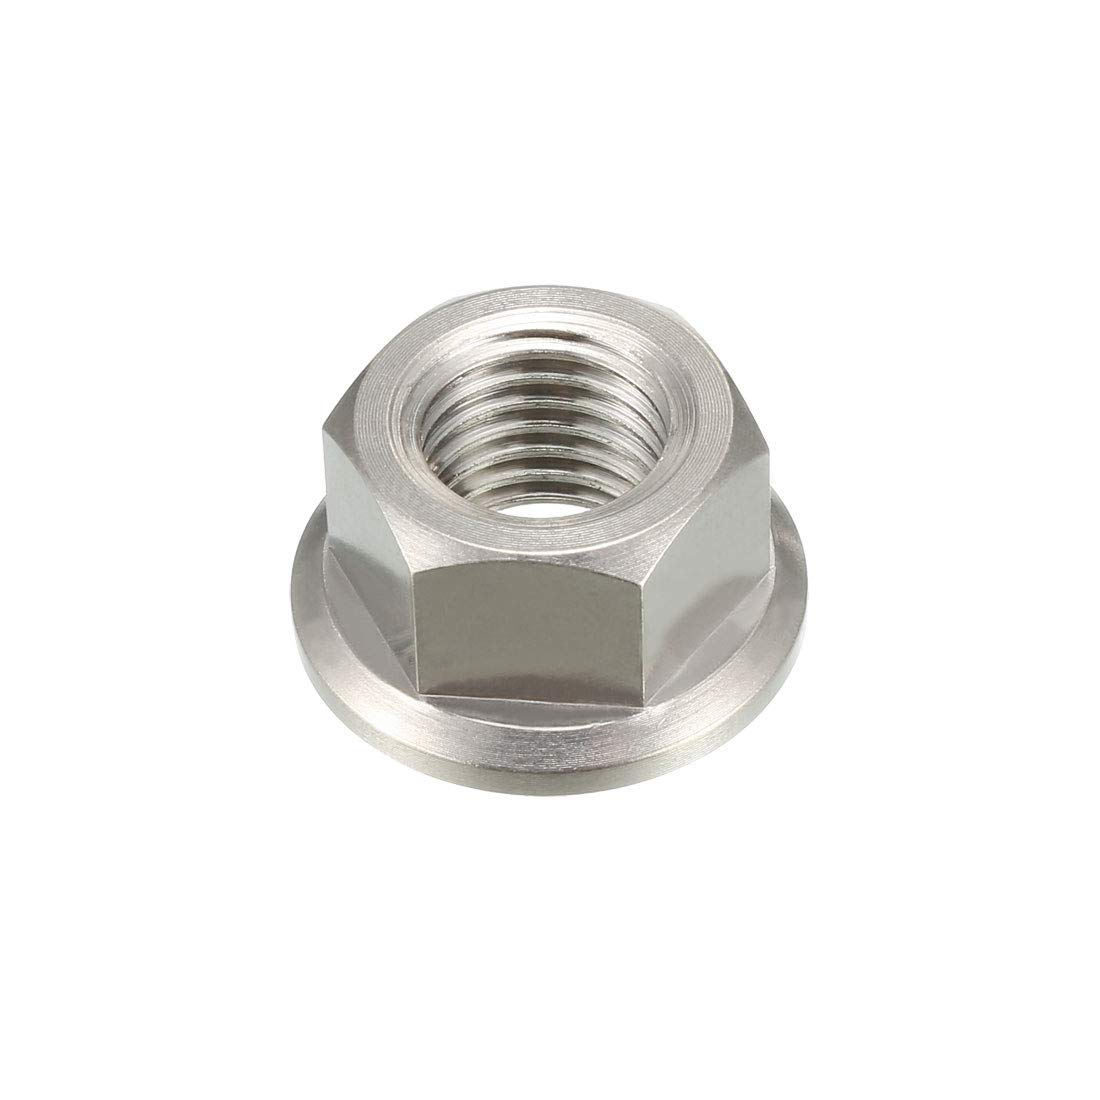 uxcell 5//16-18 Nylon Insert Hex Lock Nuts Plain Finish Pack of 25 304 Stainless Steel